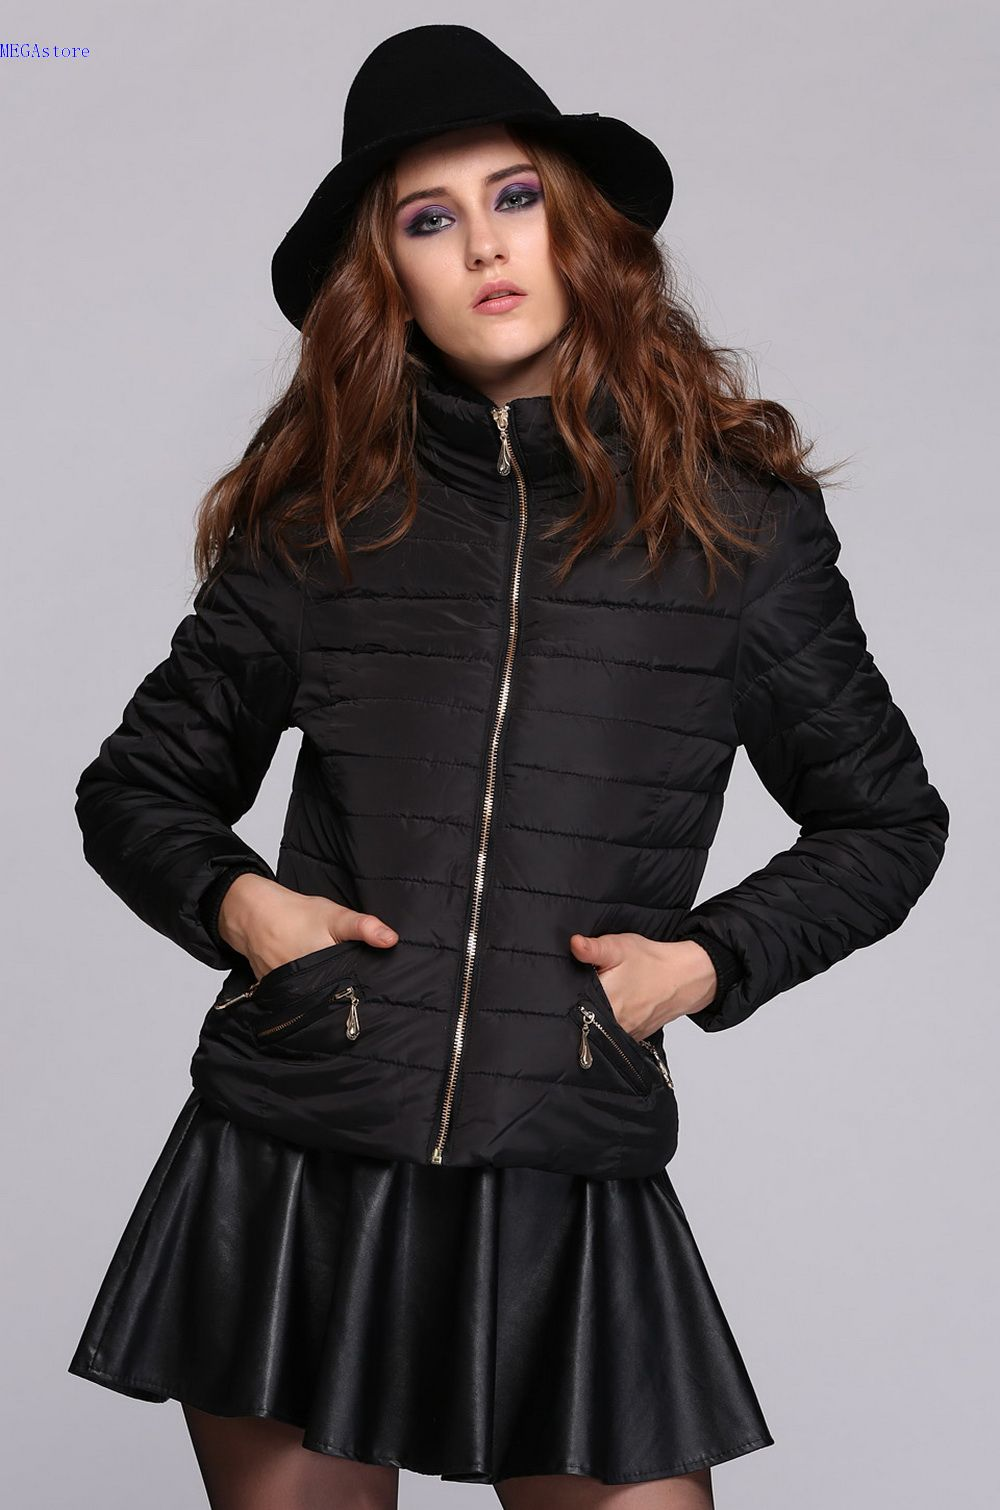 Winter jacket for sale – Modern fashion jacket photo blog